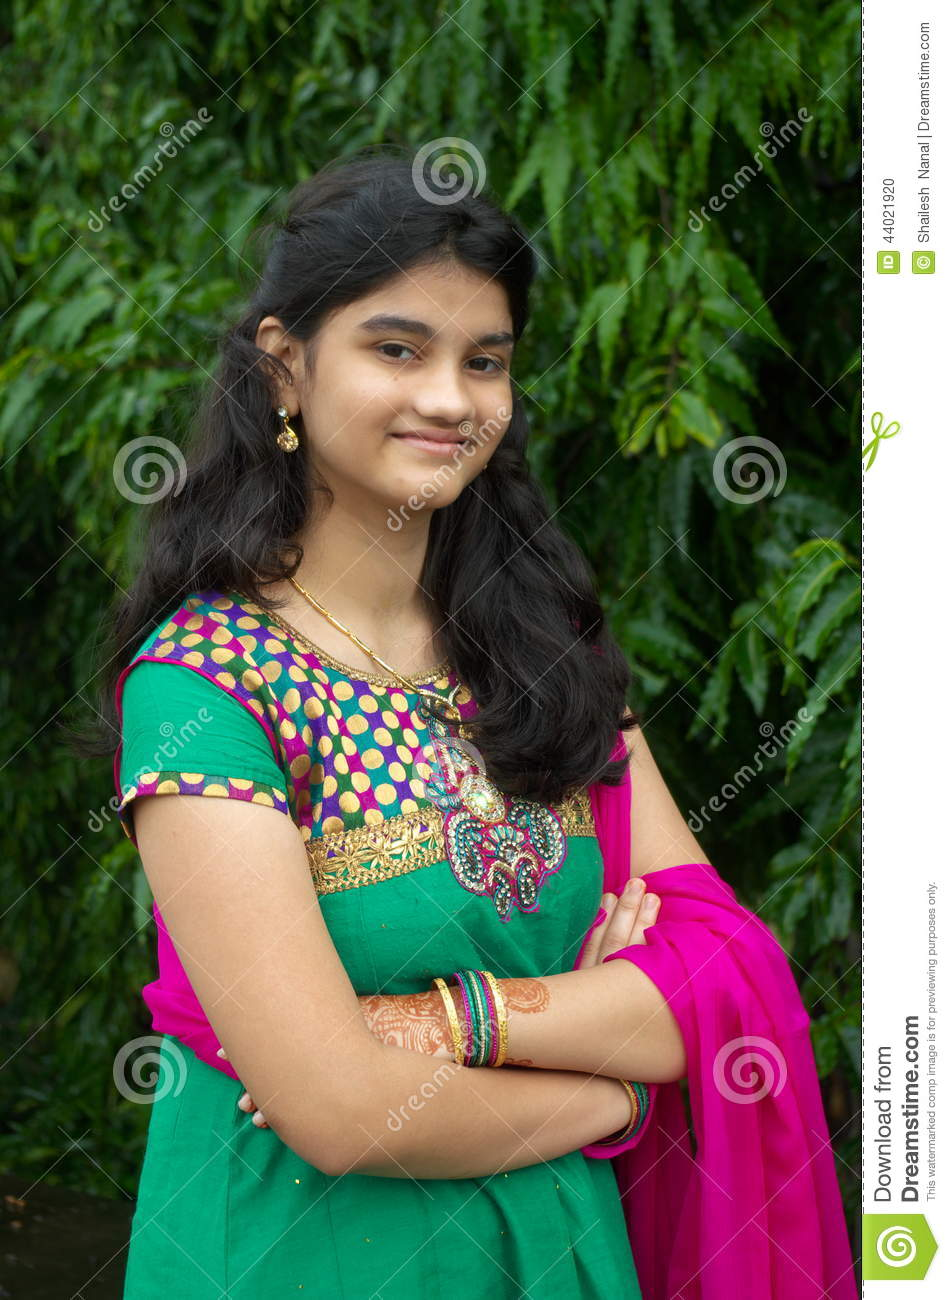 A simple Indian girl stock photo. Image of outdoor, green - 44021920